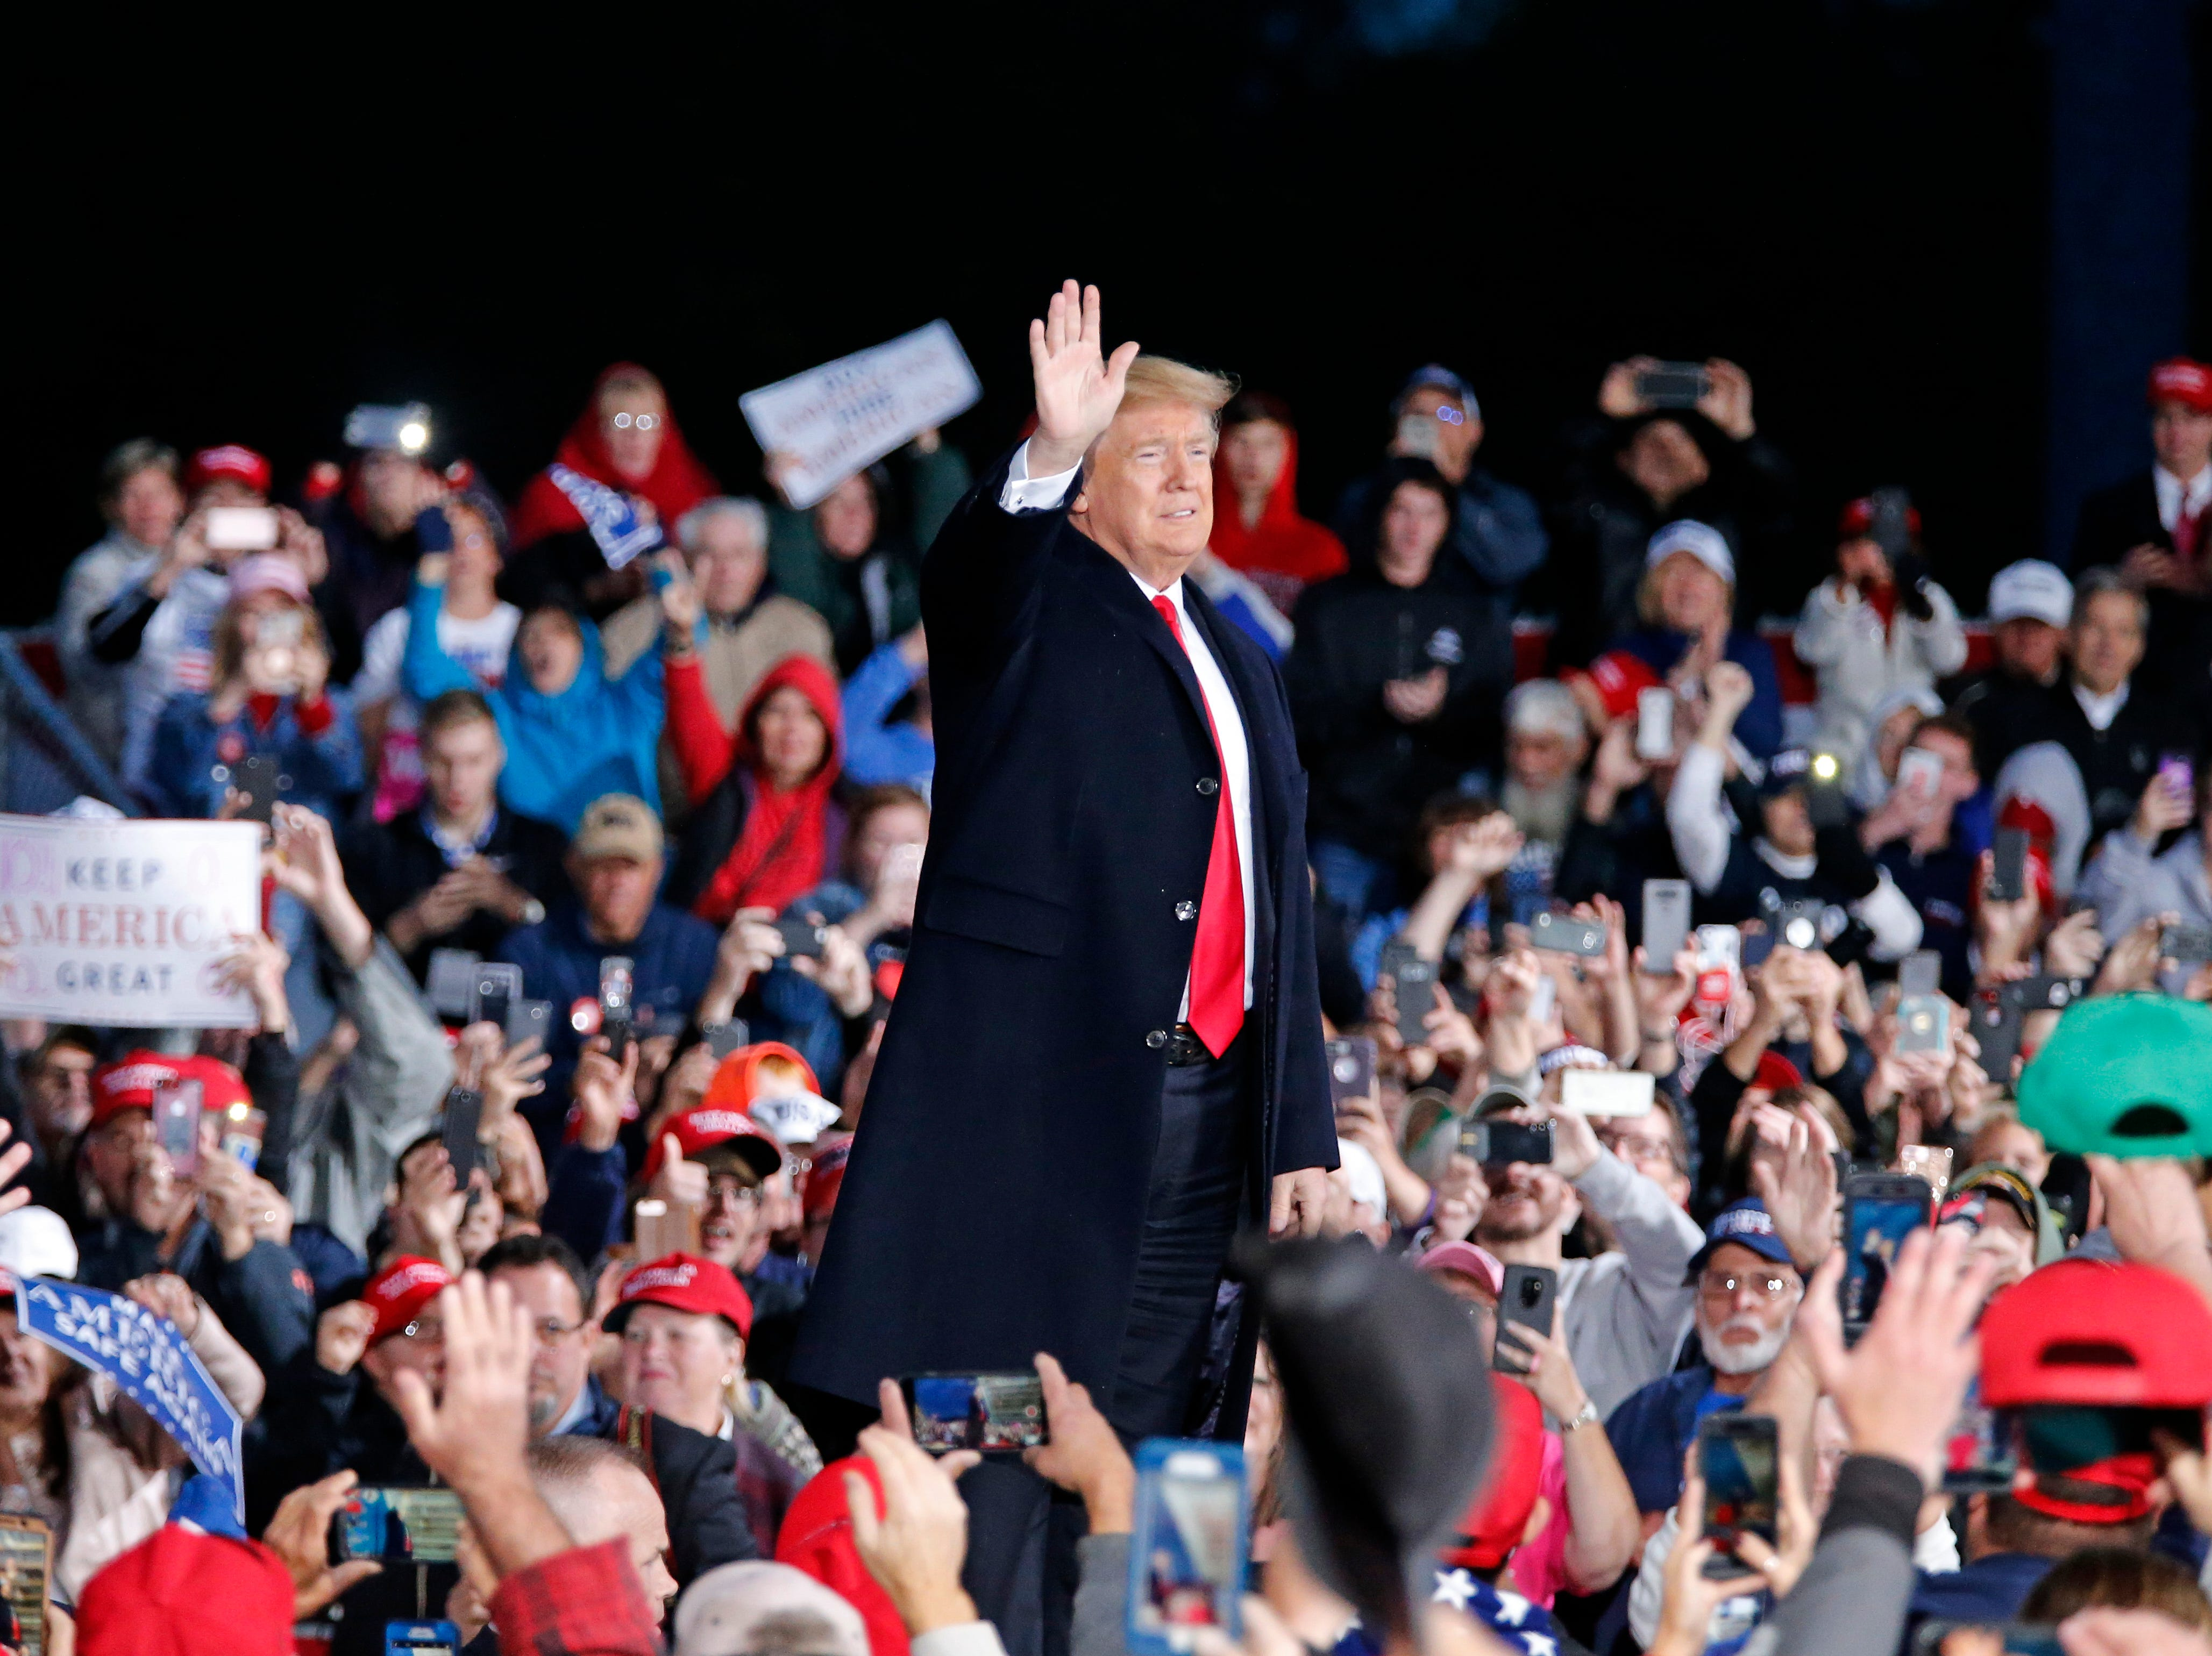 President Donald Trump takes the state as he's introduced during a Make America Great Again rally at the warren County Fair Grounds in Lebanon, Ohio, on Friday, Oct. 12, 2018.